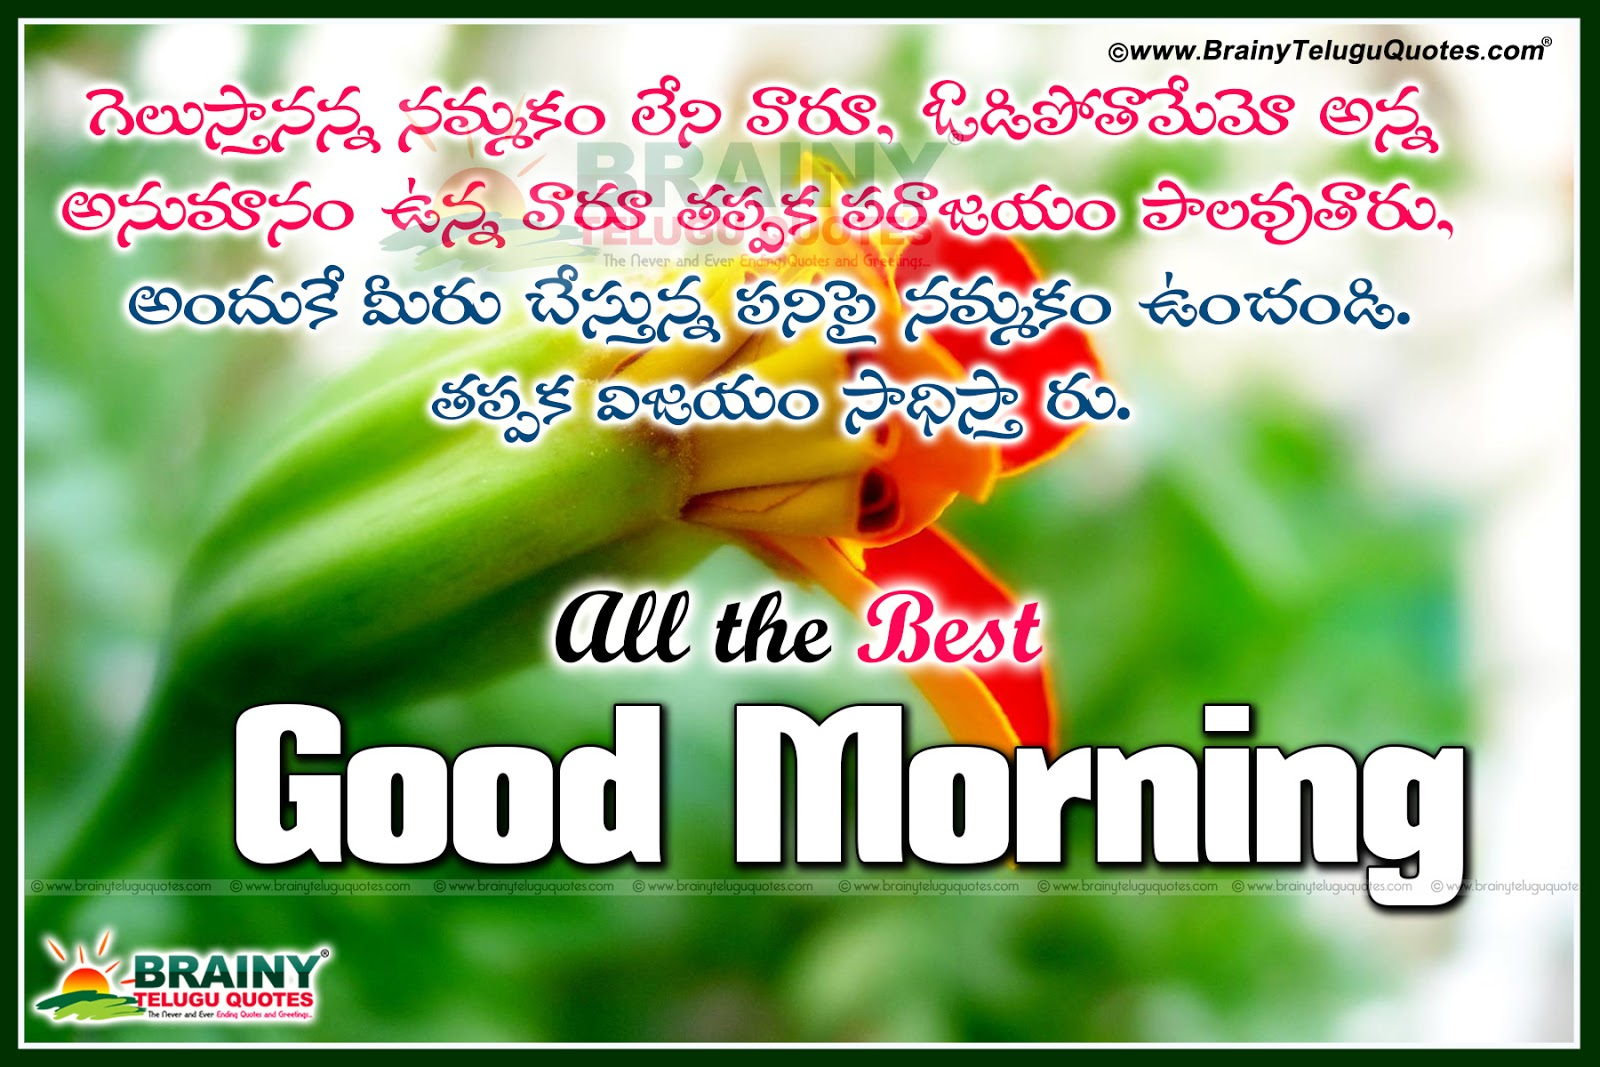 Brainy Quotes Telugu Best Good Morning Kavithalu With Inspirational Quotes